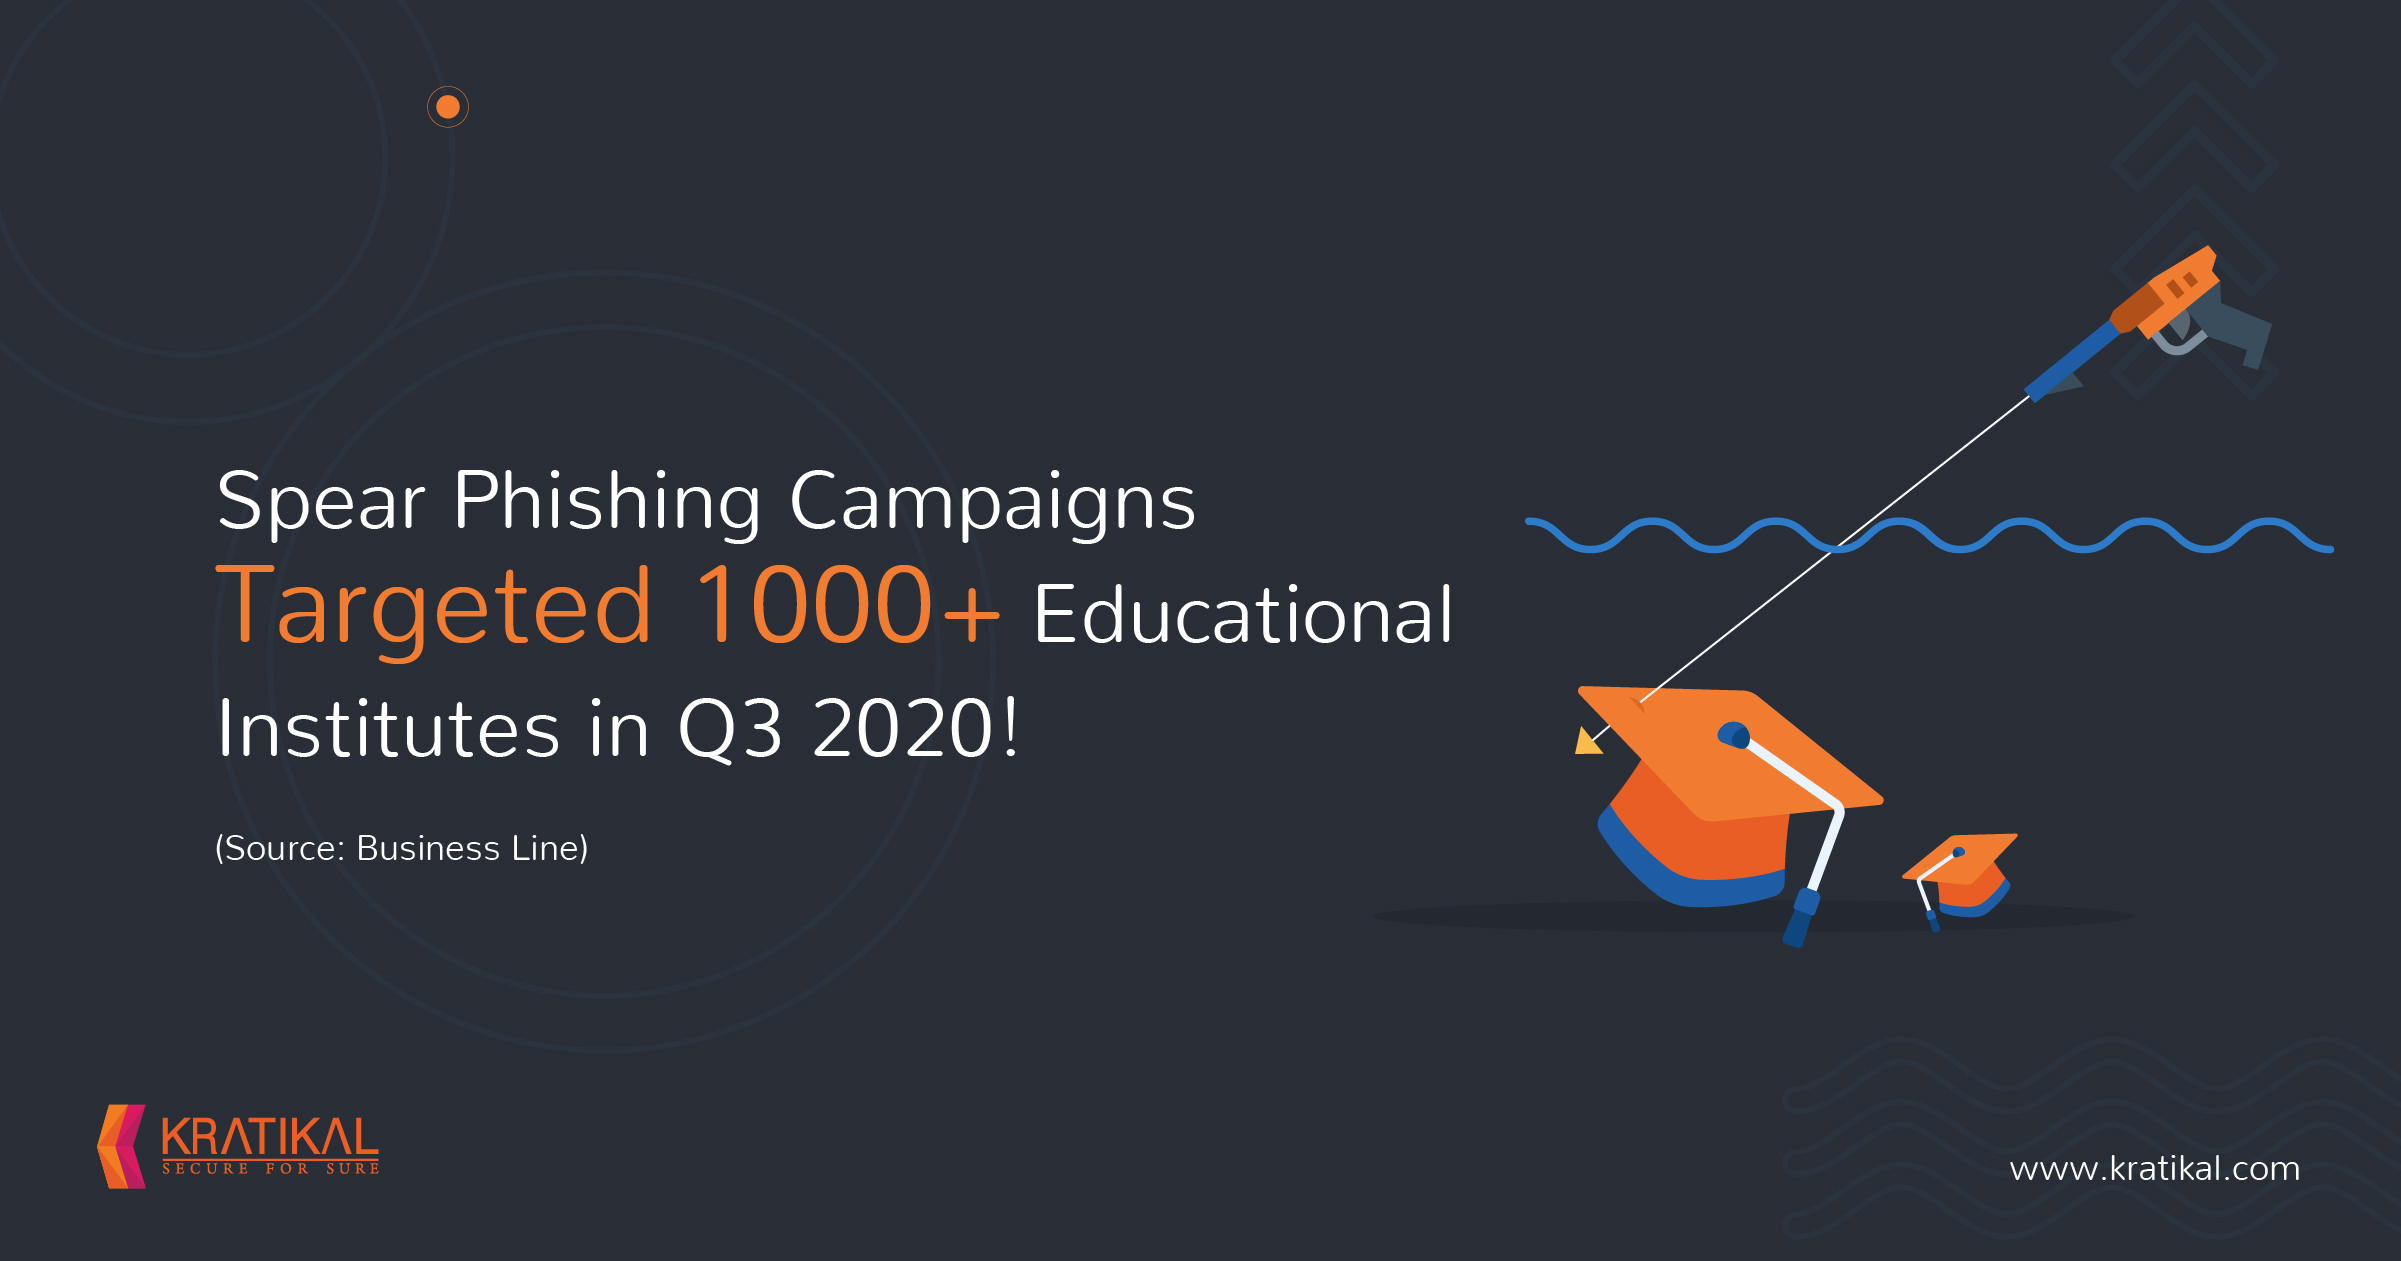 Spear Phishing Campaigns Targeted 1000+ Organizations in the Education Sectorin Q3 2020!